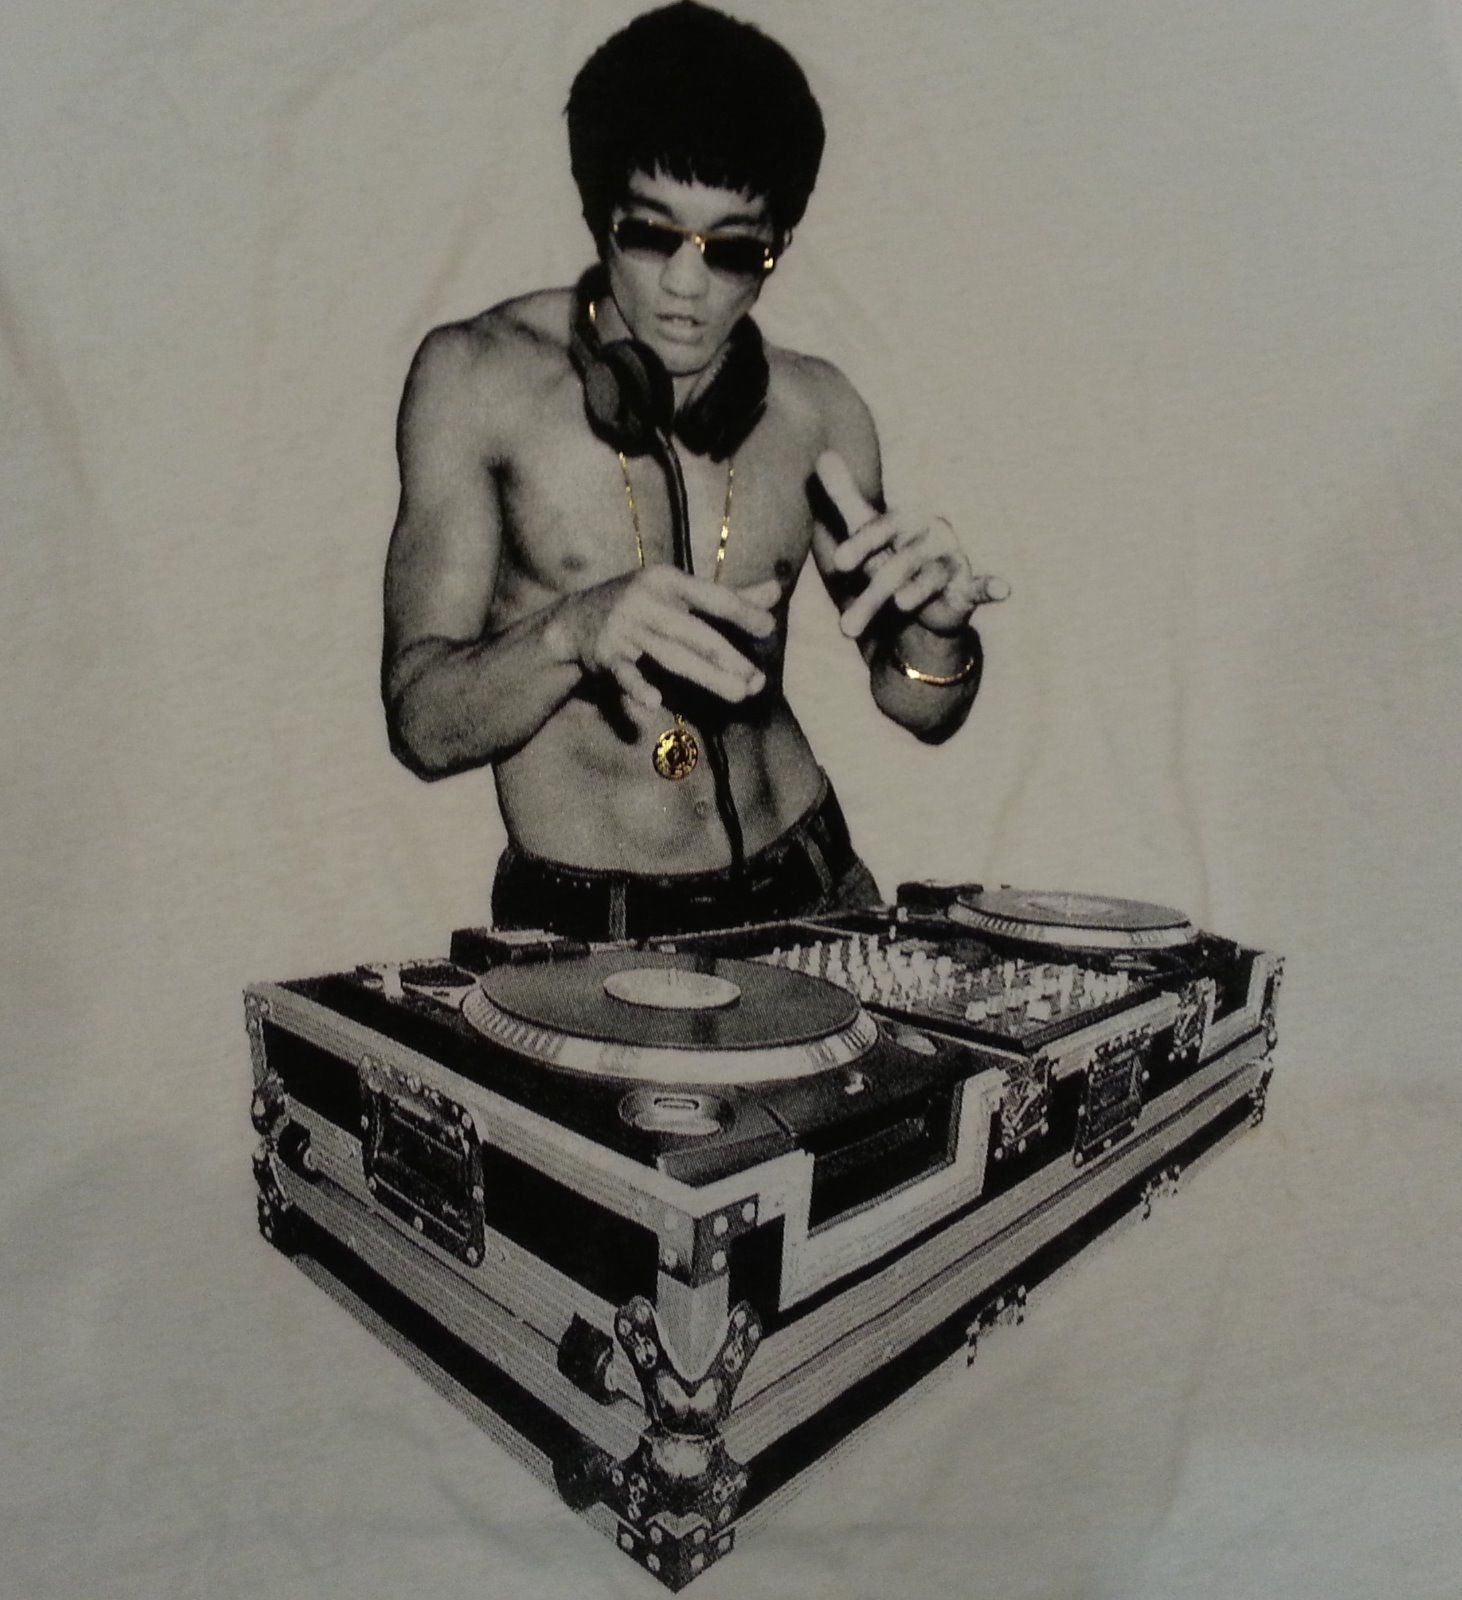 10 New Bruce Lee Dj Wallpaper Full Hd 19201080 For Pc Background